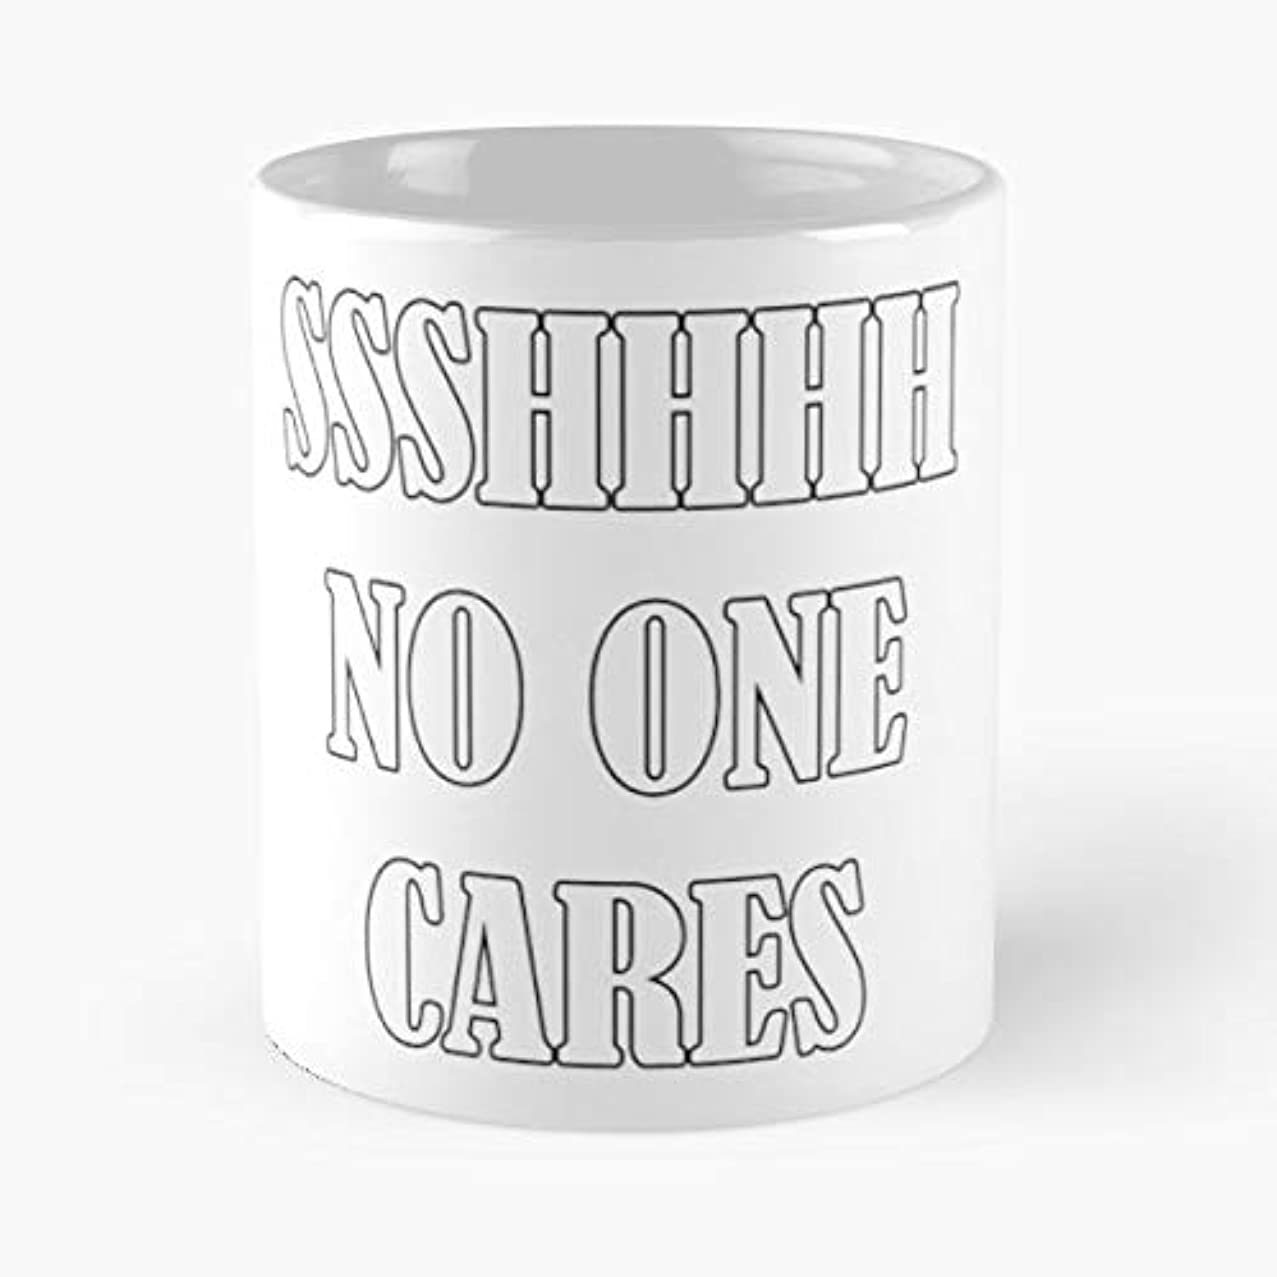 Shhh Ssshhhh No One Cares -funny Gifts For Men And Women Gift Coffee Mug Tea Cup White-11 Oz.